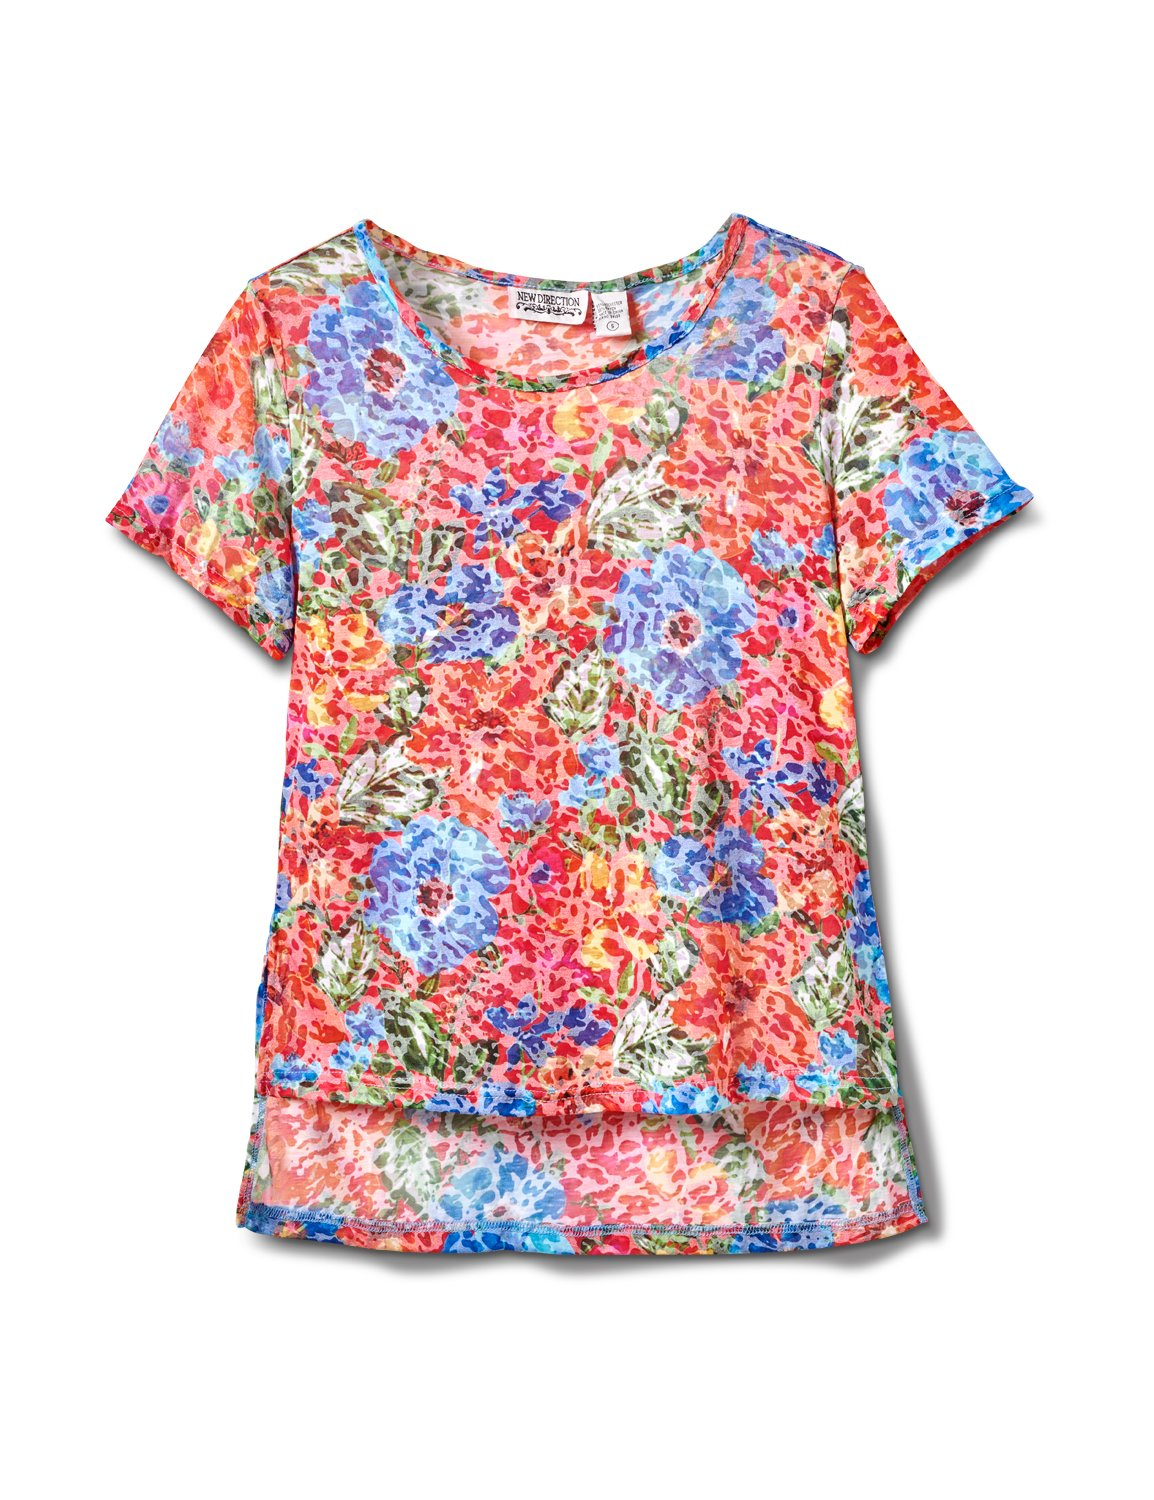 Floral Texture Knit Tee -Multi - Front